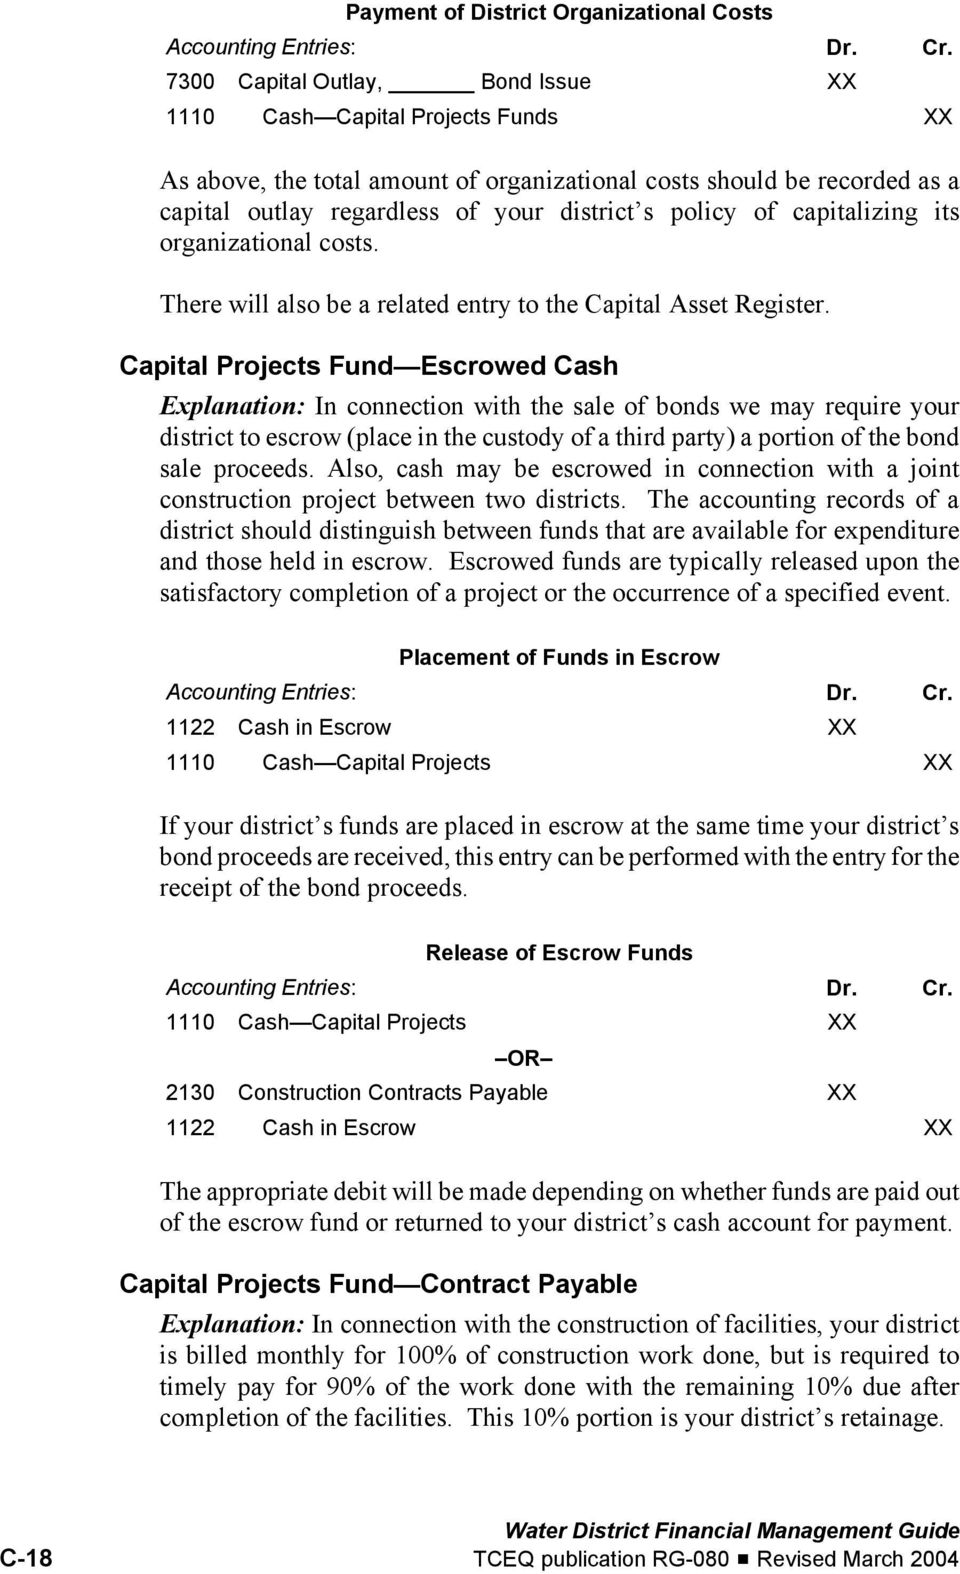 Capital Projects Fund Escrowed Cash Explanation: In connection with the sale of bonds we may require your district to escrow (place in the custody of a third party) a portion of the bond sale